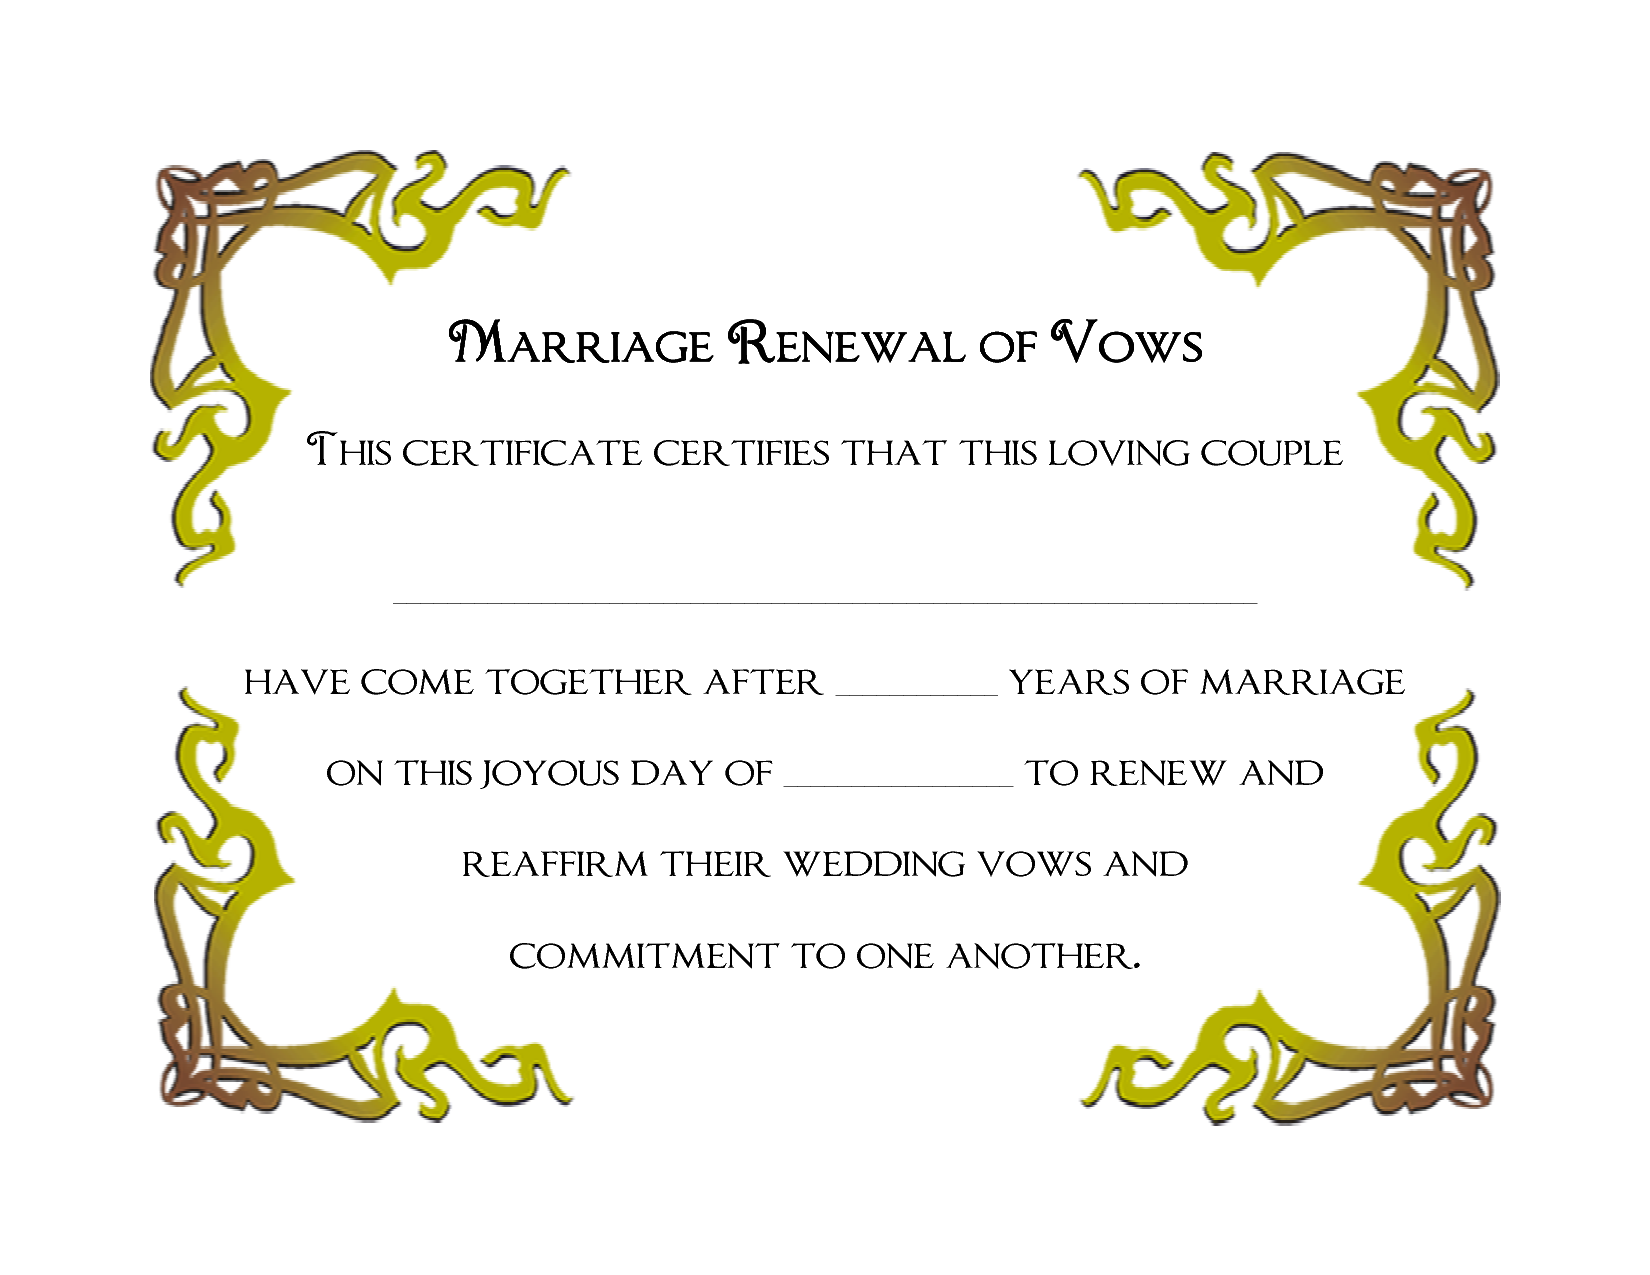 Marriage Renewal Template